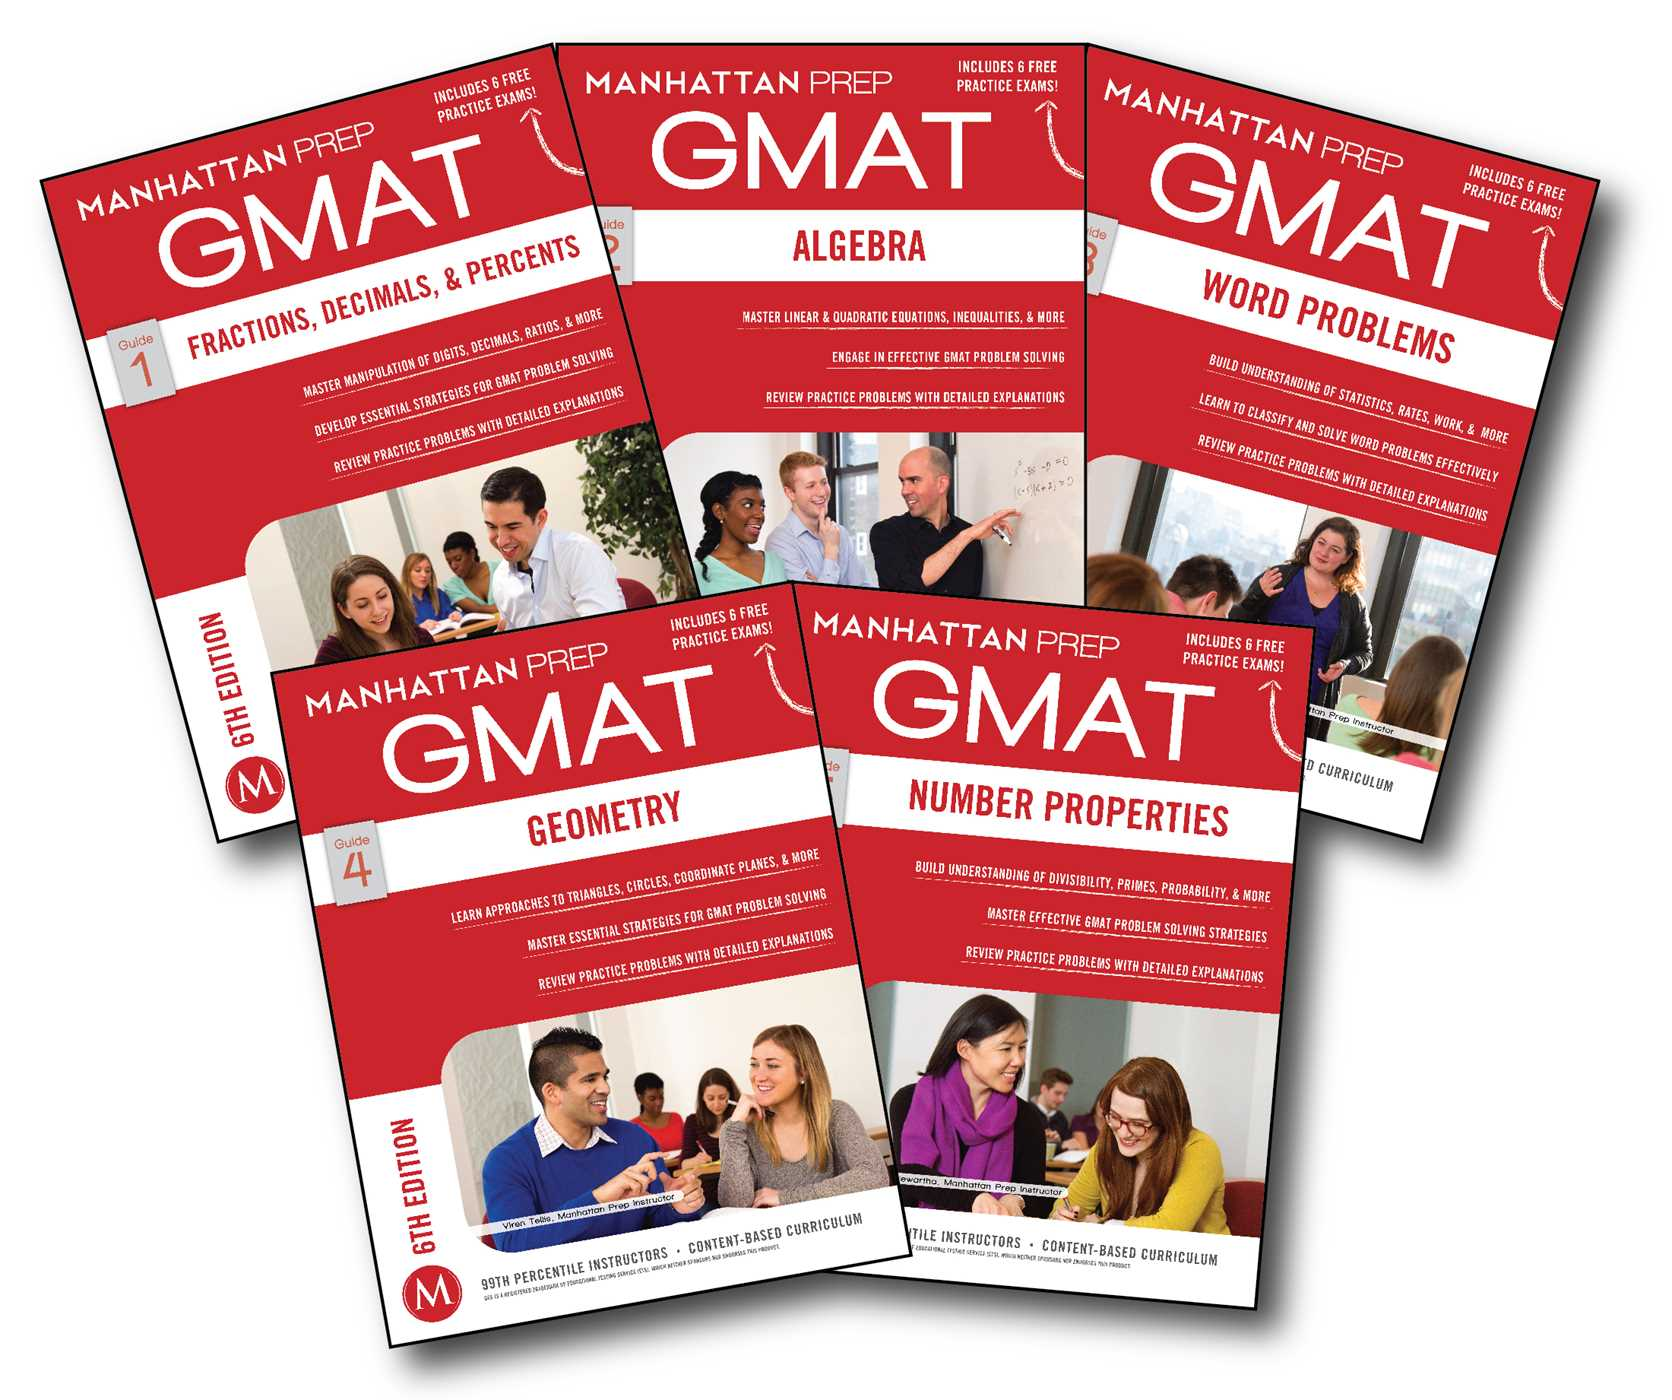 Book Cover Image (jpg): GMAT Quantitative Strategy Guide Set